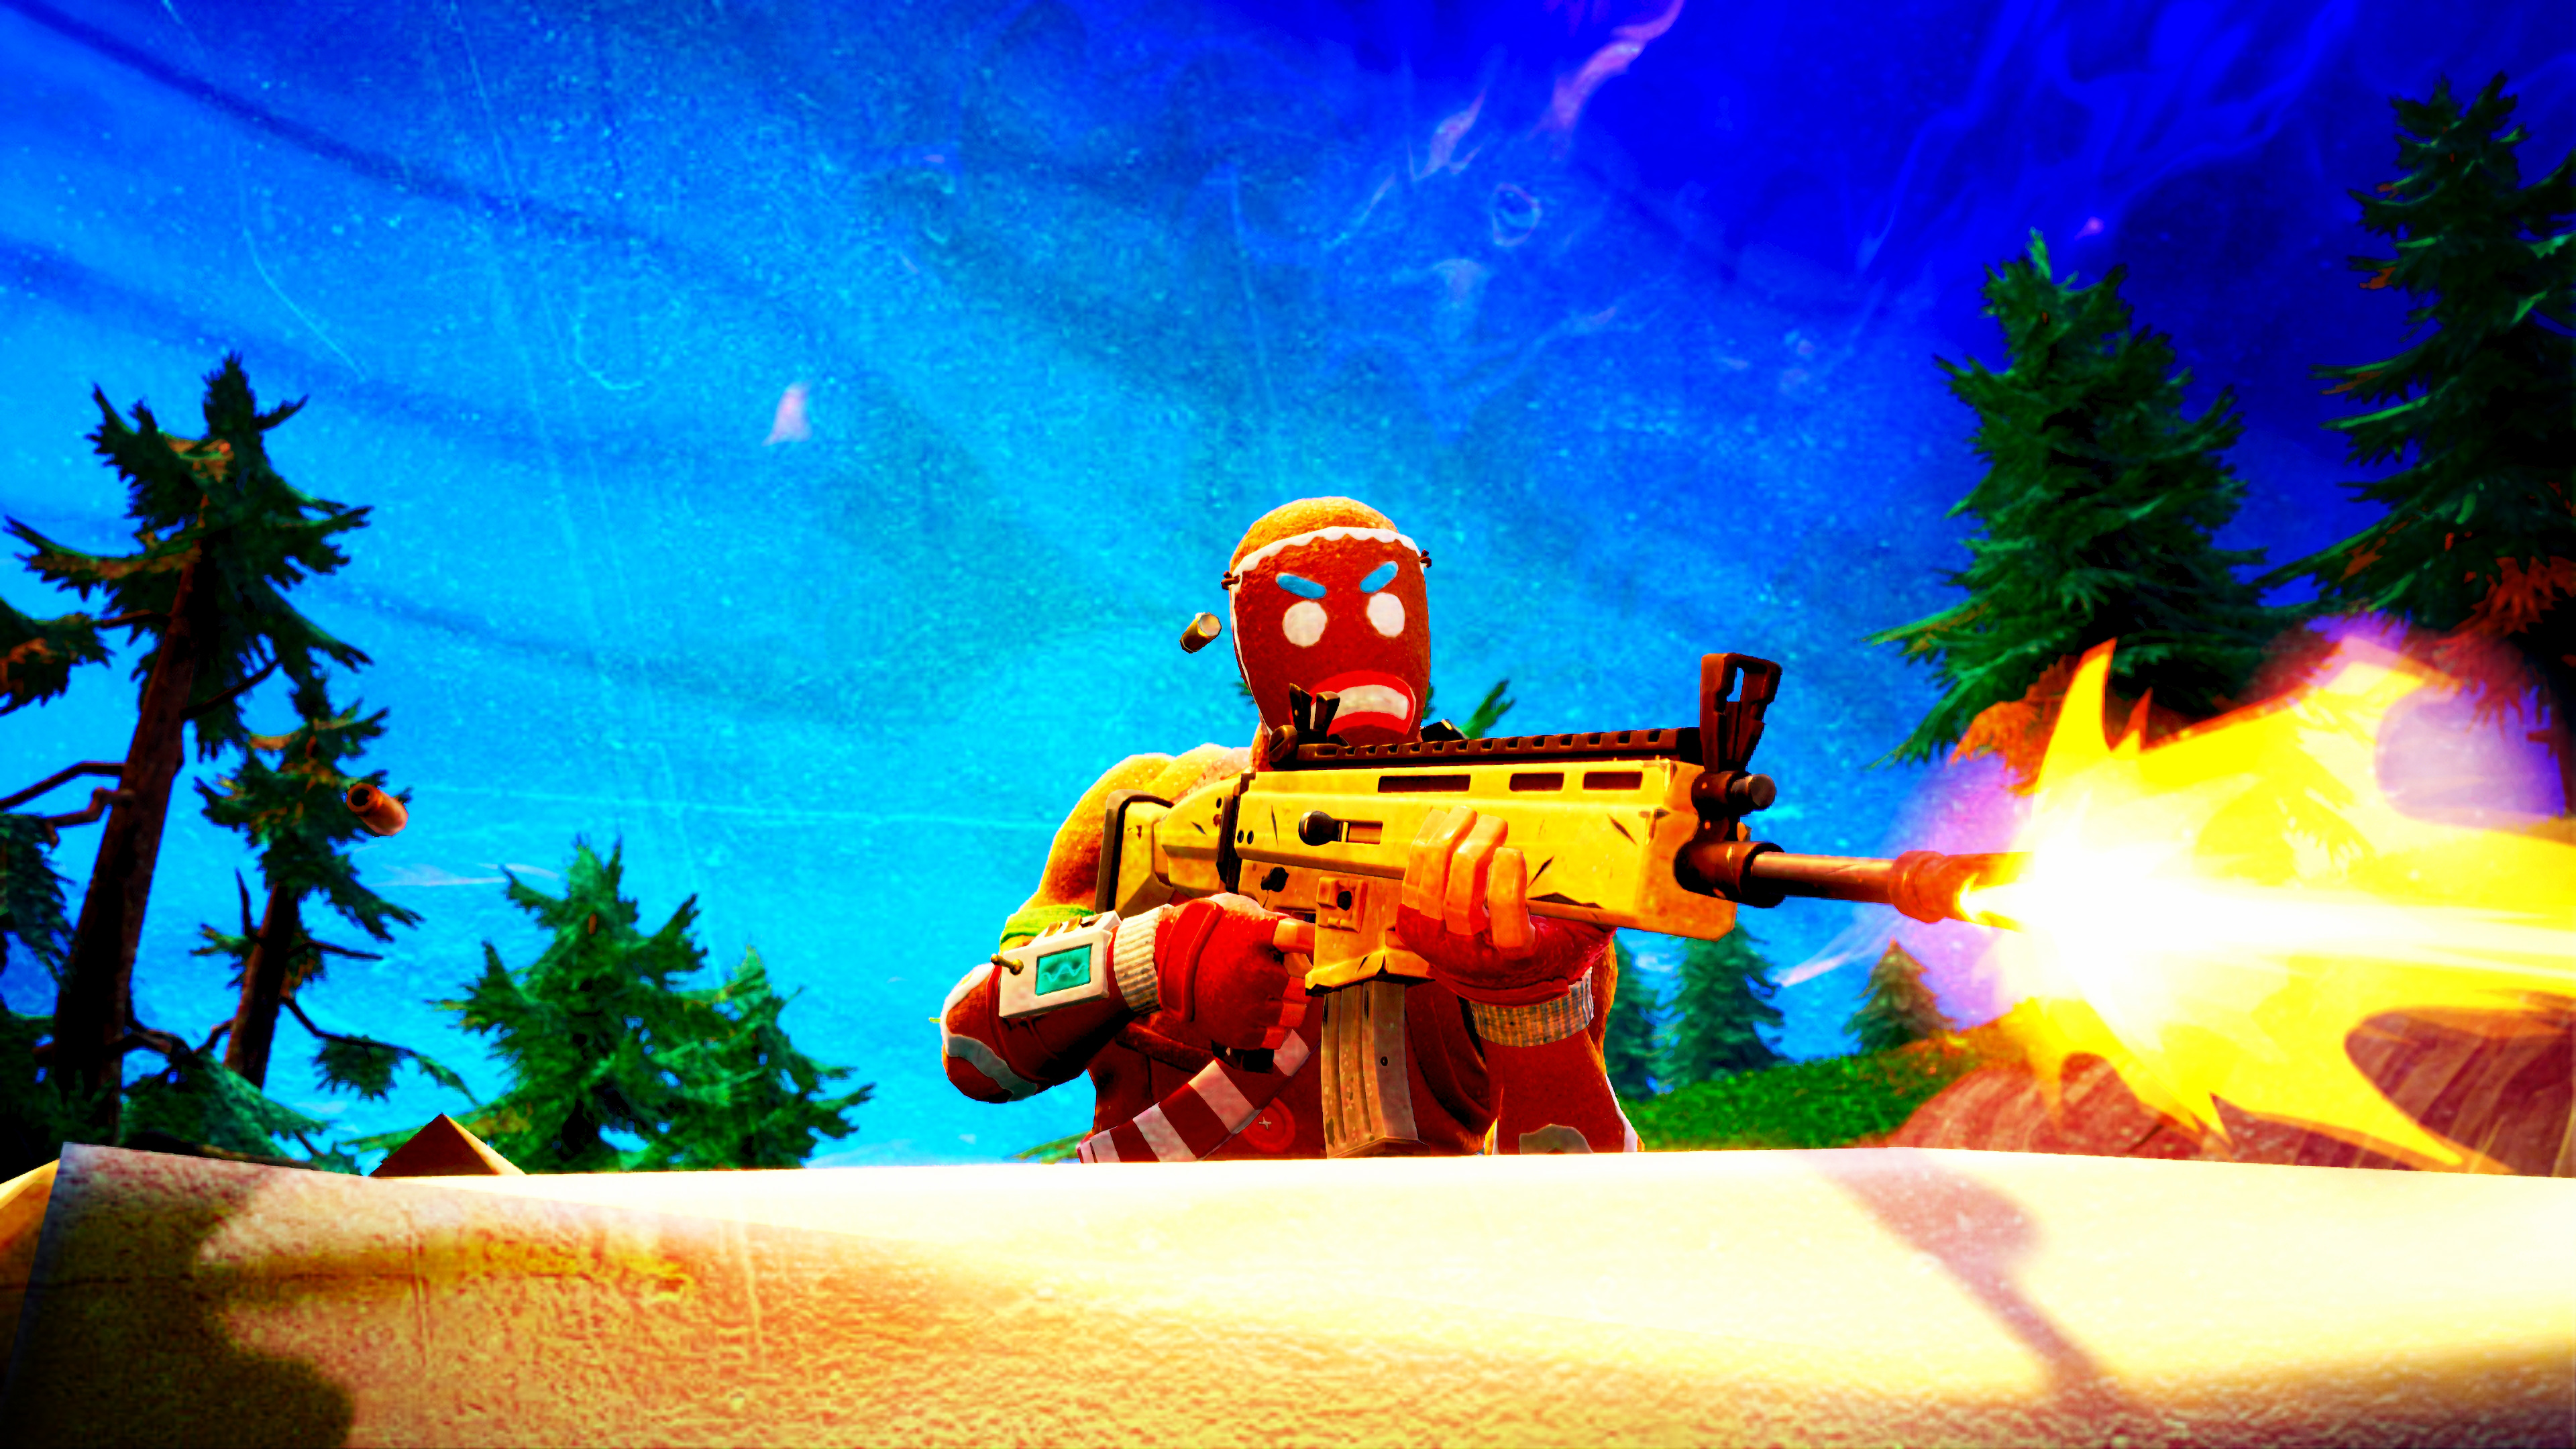 Fortnite background 141